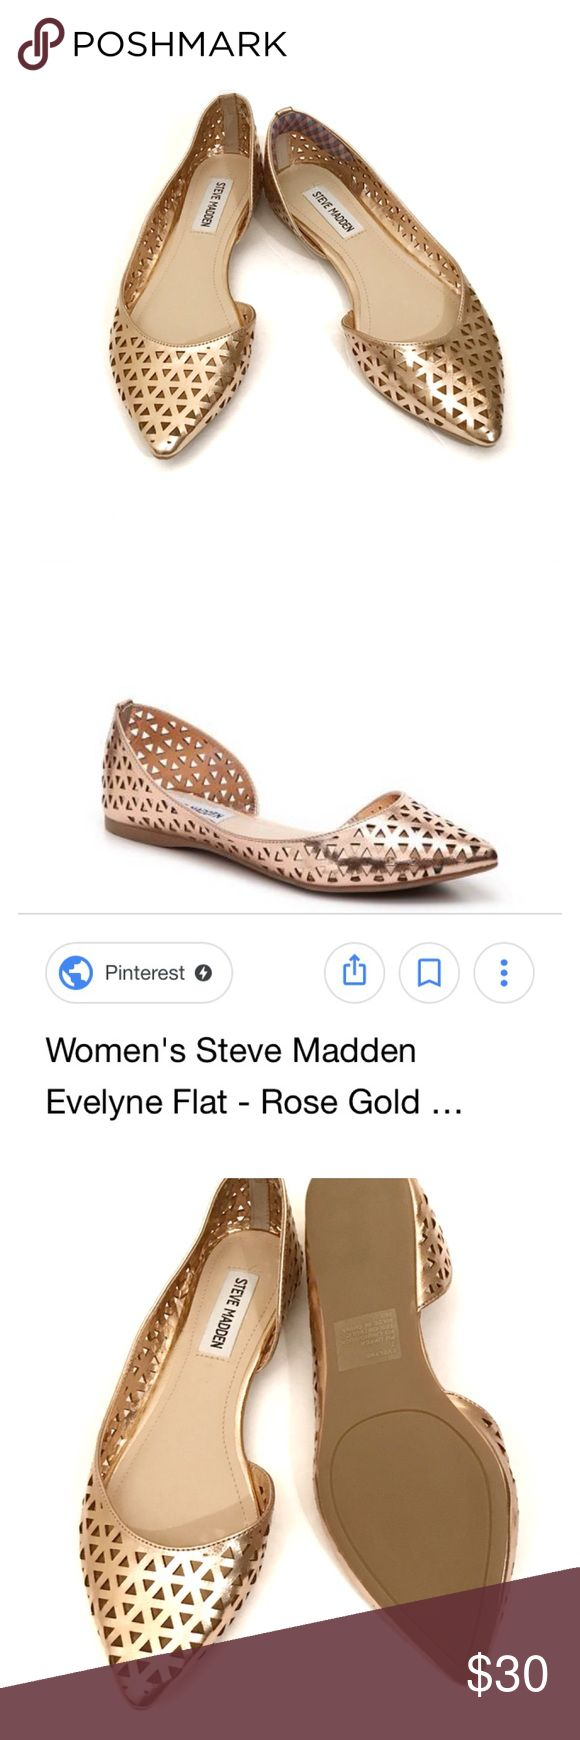 Steve Madden Evelyne flats in rose gold 7 Steve Madden Evelyne flats in rose gold 7. The lighting in my house makes this look just gold but they are the rose gold color of the professional pic. NWOB. Steve Madden Shoes Flats & Loafers